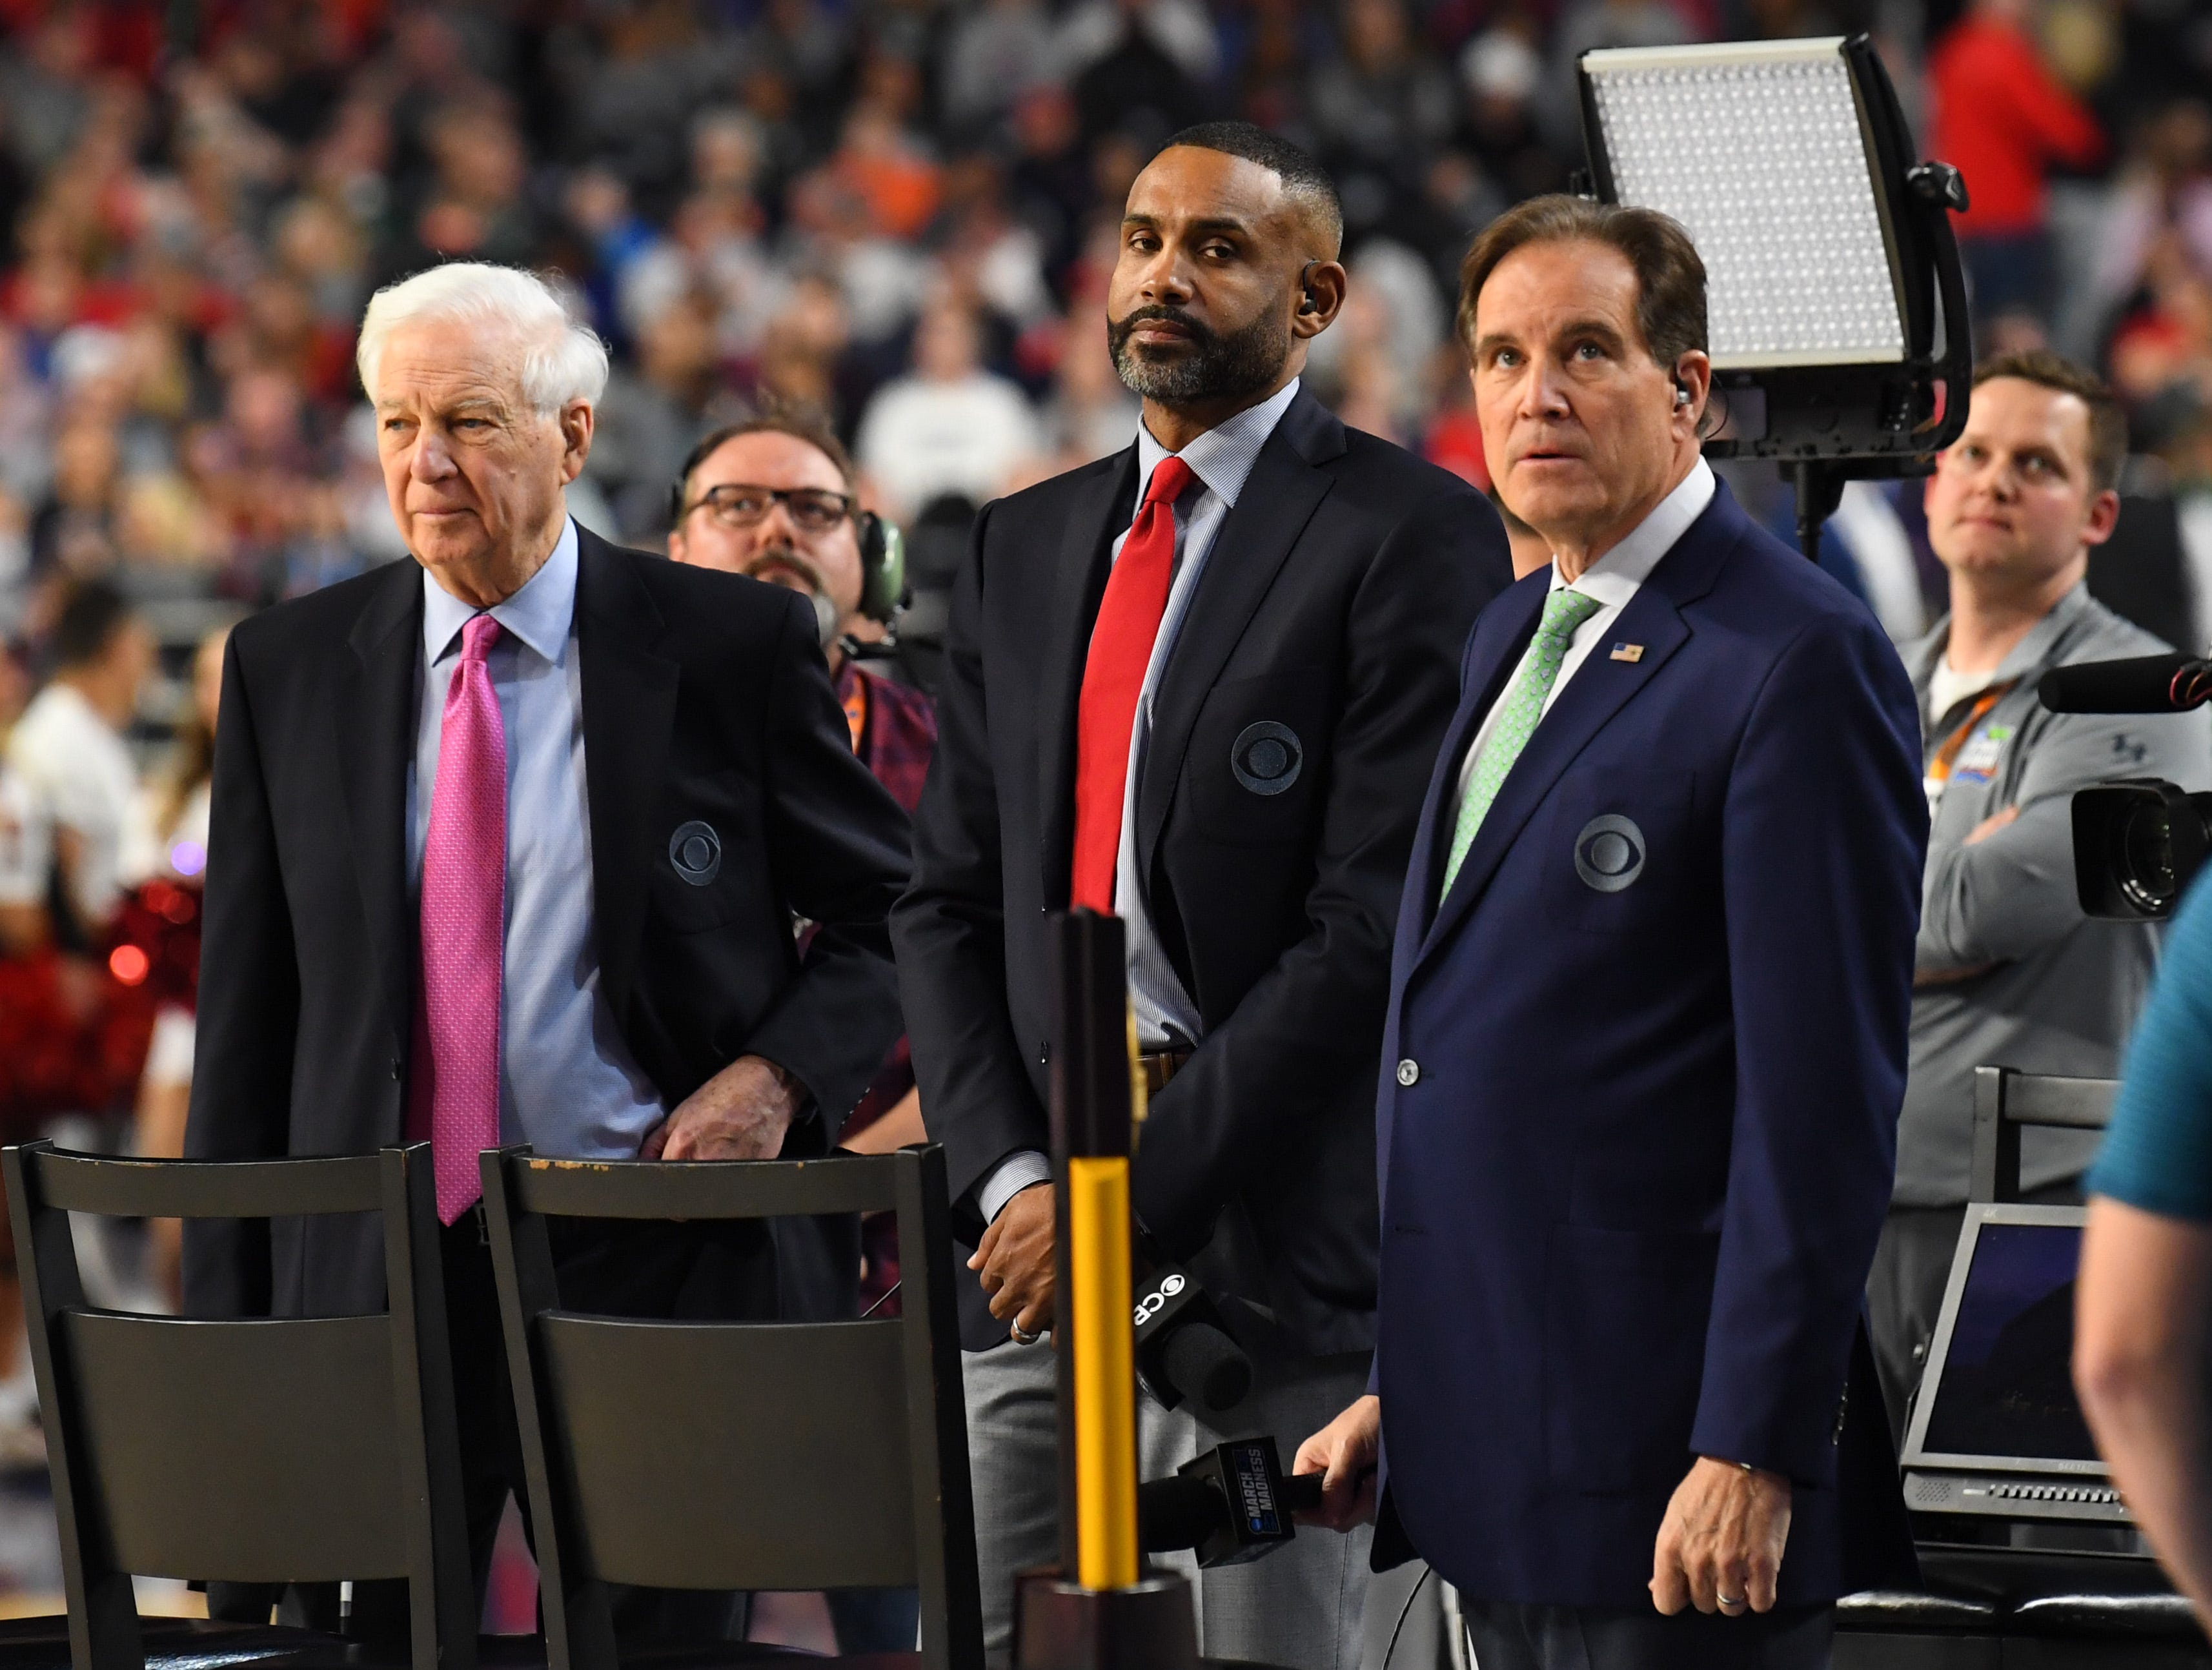 Apr 8, 2019; Minneapolis, MN, USA; CBS broadcasters Bill Raftery (left) Grant Hill (center) Jim Nantz (right) prior to the game between the Texas Tech Red Raiders and the Virginia Cavaliers in the championship game of the 2019 men's Final Four at US Bank Stadium. Mandatory Credit: Robert Deutsch-USA TODAY Sports